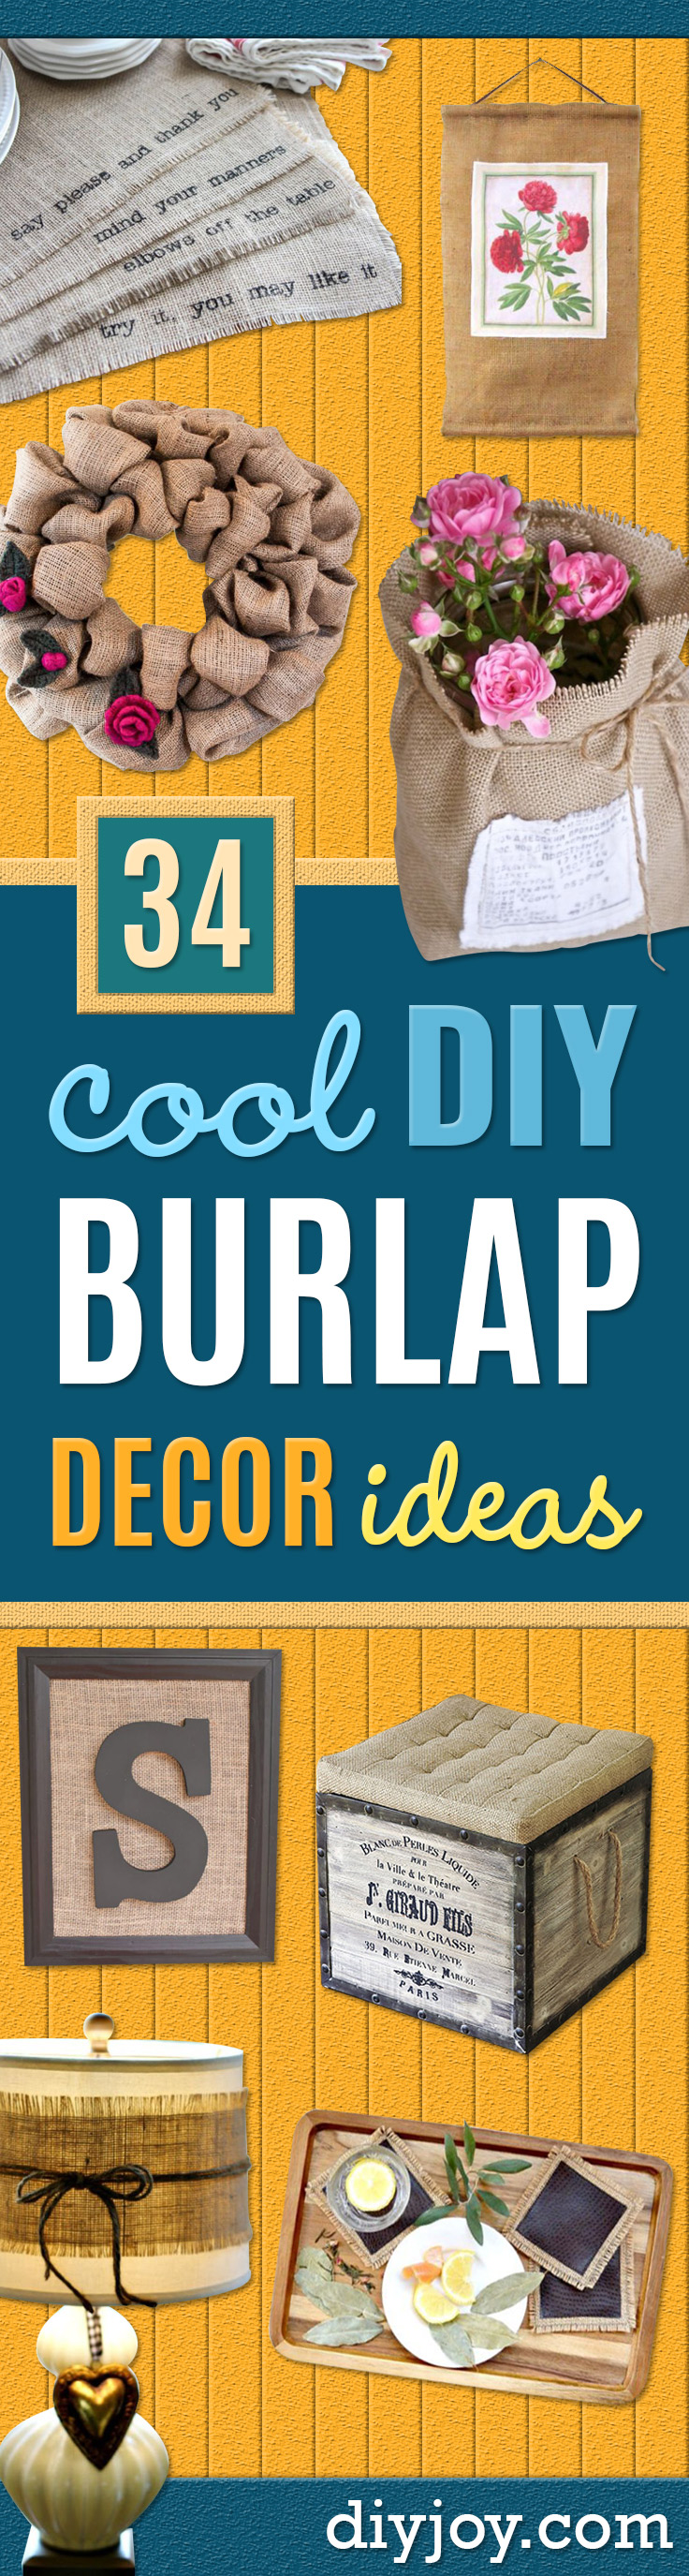 DIY Burlap Ideas - Burlap Furniture, Home Decor and Crafts - Banners and Buntings, Wall Art, Ottoman from Coffee Sacks, Wreath, Centerpieces and Table Runner - Kitchen, Bedroom, Living Room, Bathroom Ideas - Shabby Chic Craft Projects and DIY Wedding Decor http://diyjoy.com/diy-burlap-decor-ideas